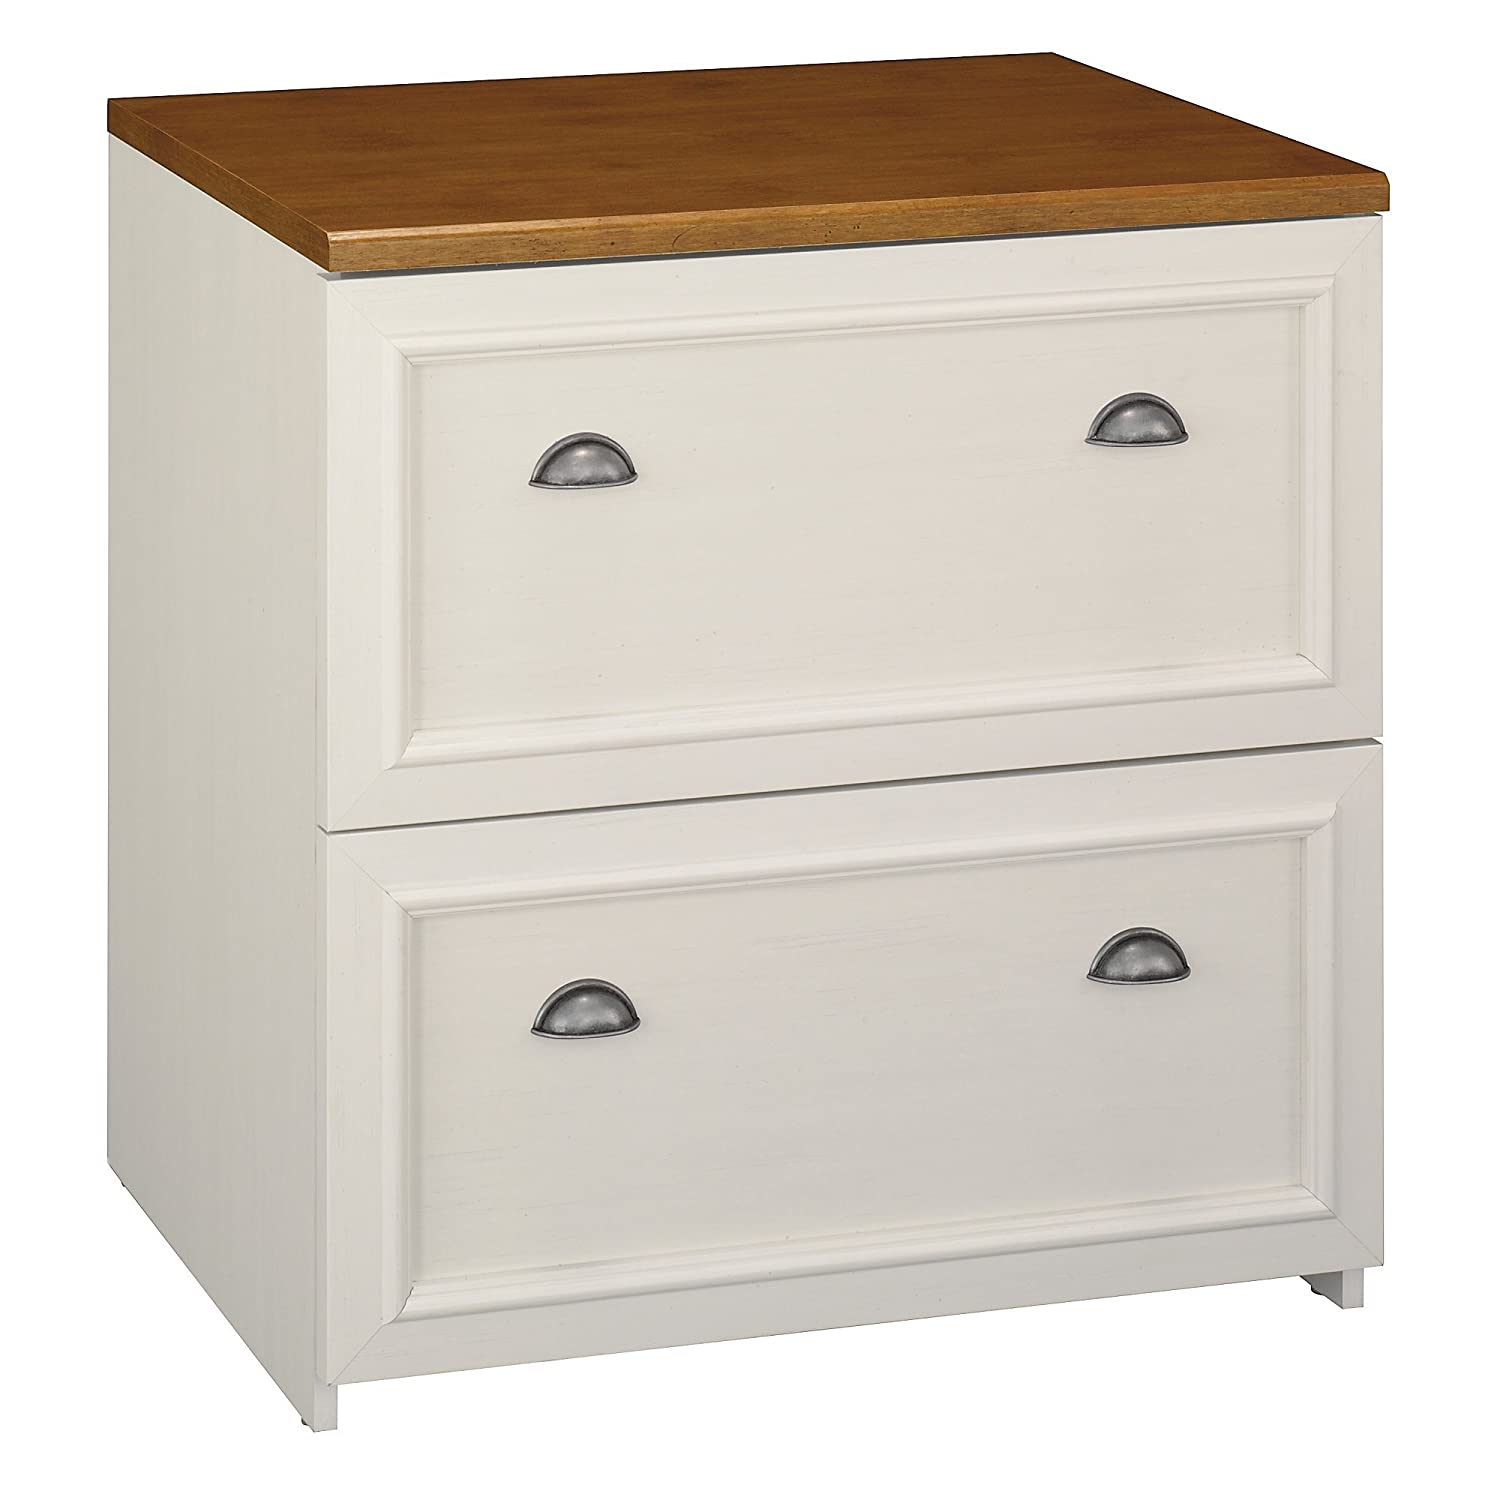 home cabinet drawer white cabinets new file storage rack lateral site must with locking filing for of bookshelf cheap sale download drawers fresh lockable small two mini